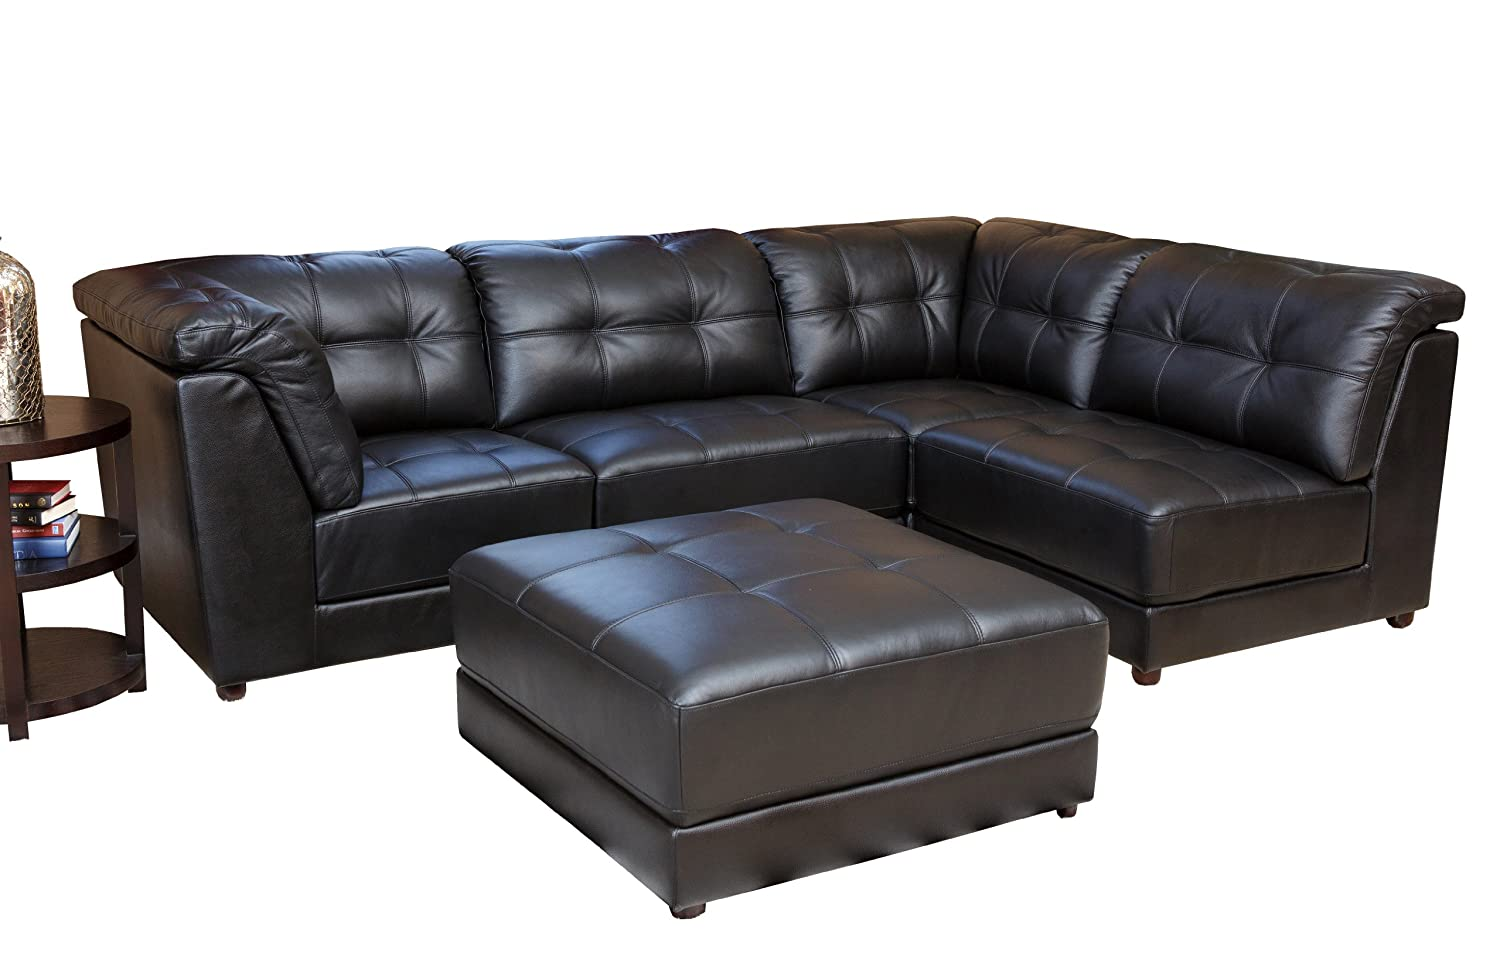 amazoncom abbyson donovan 5piece modular leather sectional sofa black home u0026 kitchen